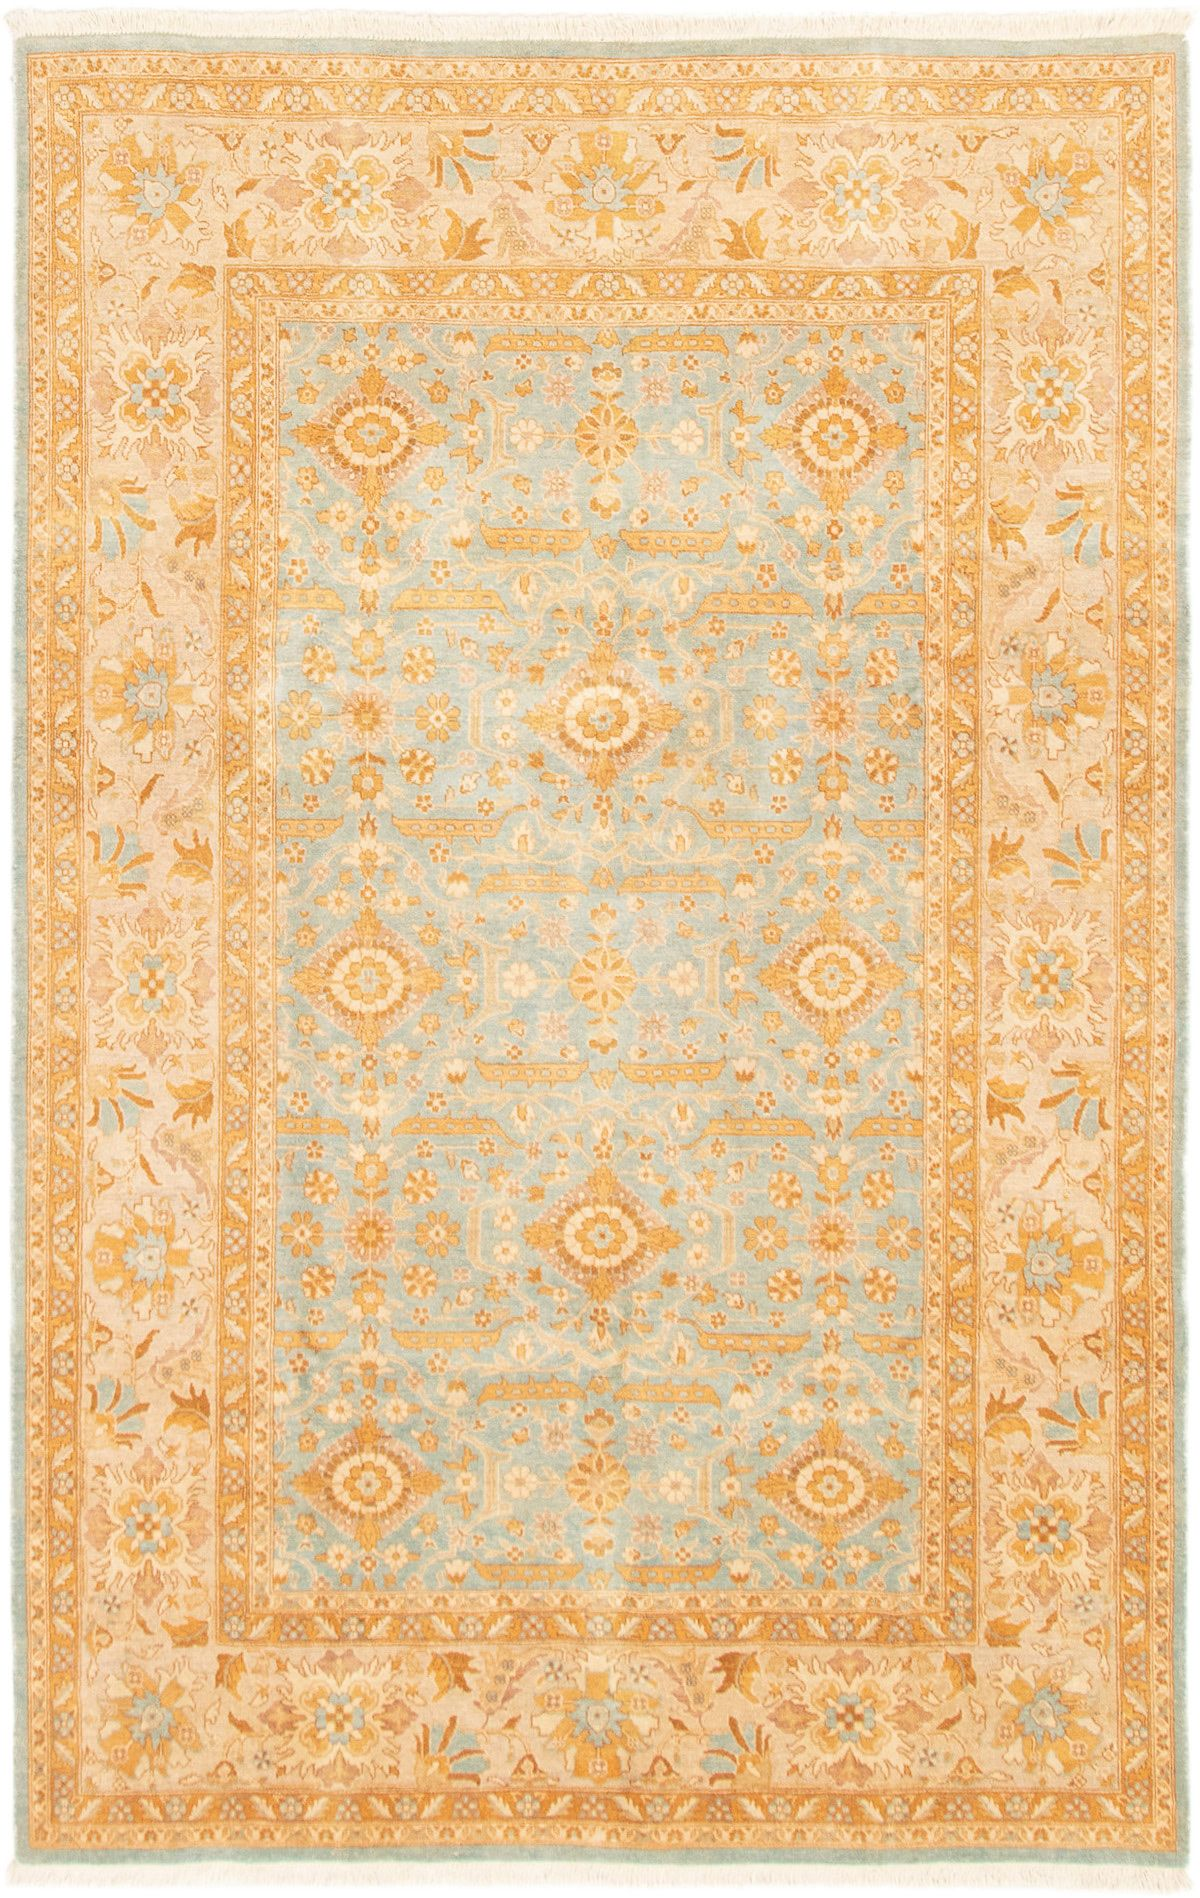 """Hand-knotted Peshawar Finest Light Blue  Wool Rug 5'10"""" x 9'2"""" Size: 5'10"""" x 9'2"""""""